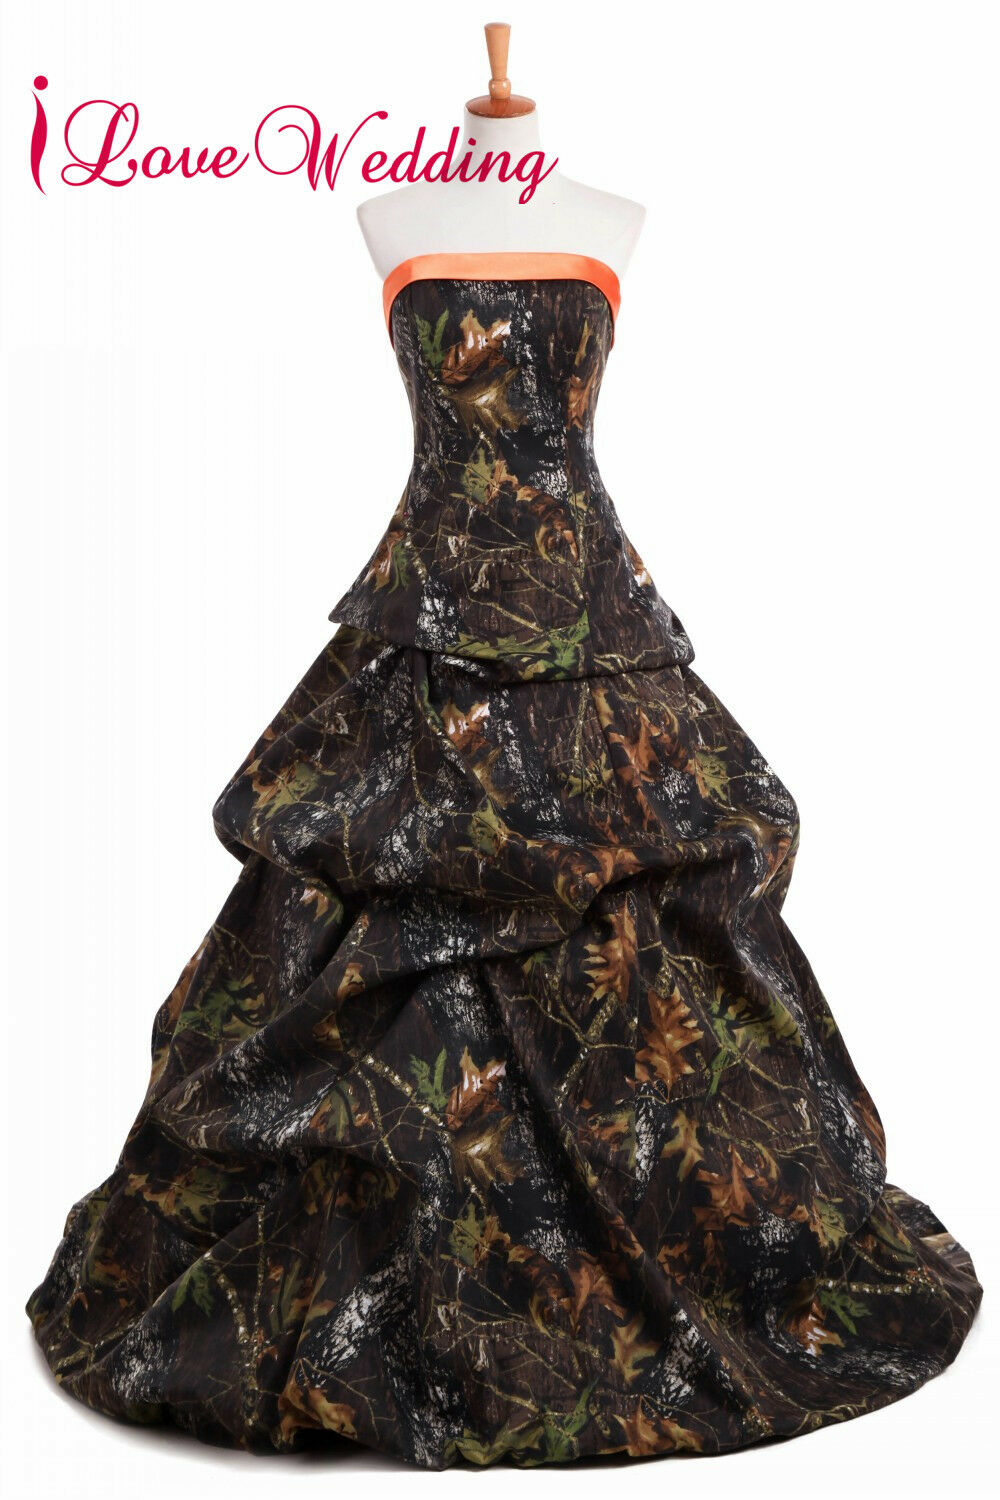 2020 Real Tree New Camo Wedding Dresses Camouflage Lace Up Bridal Gowns Custom 7708424791513 Ebay